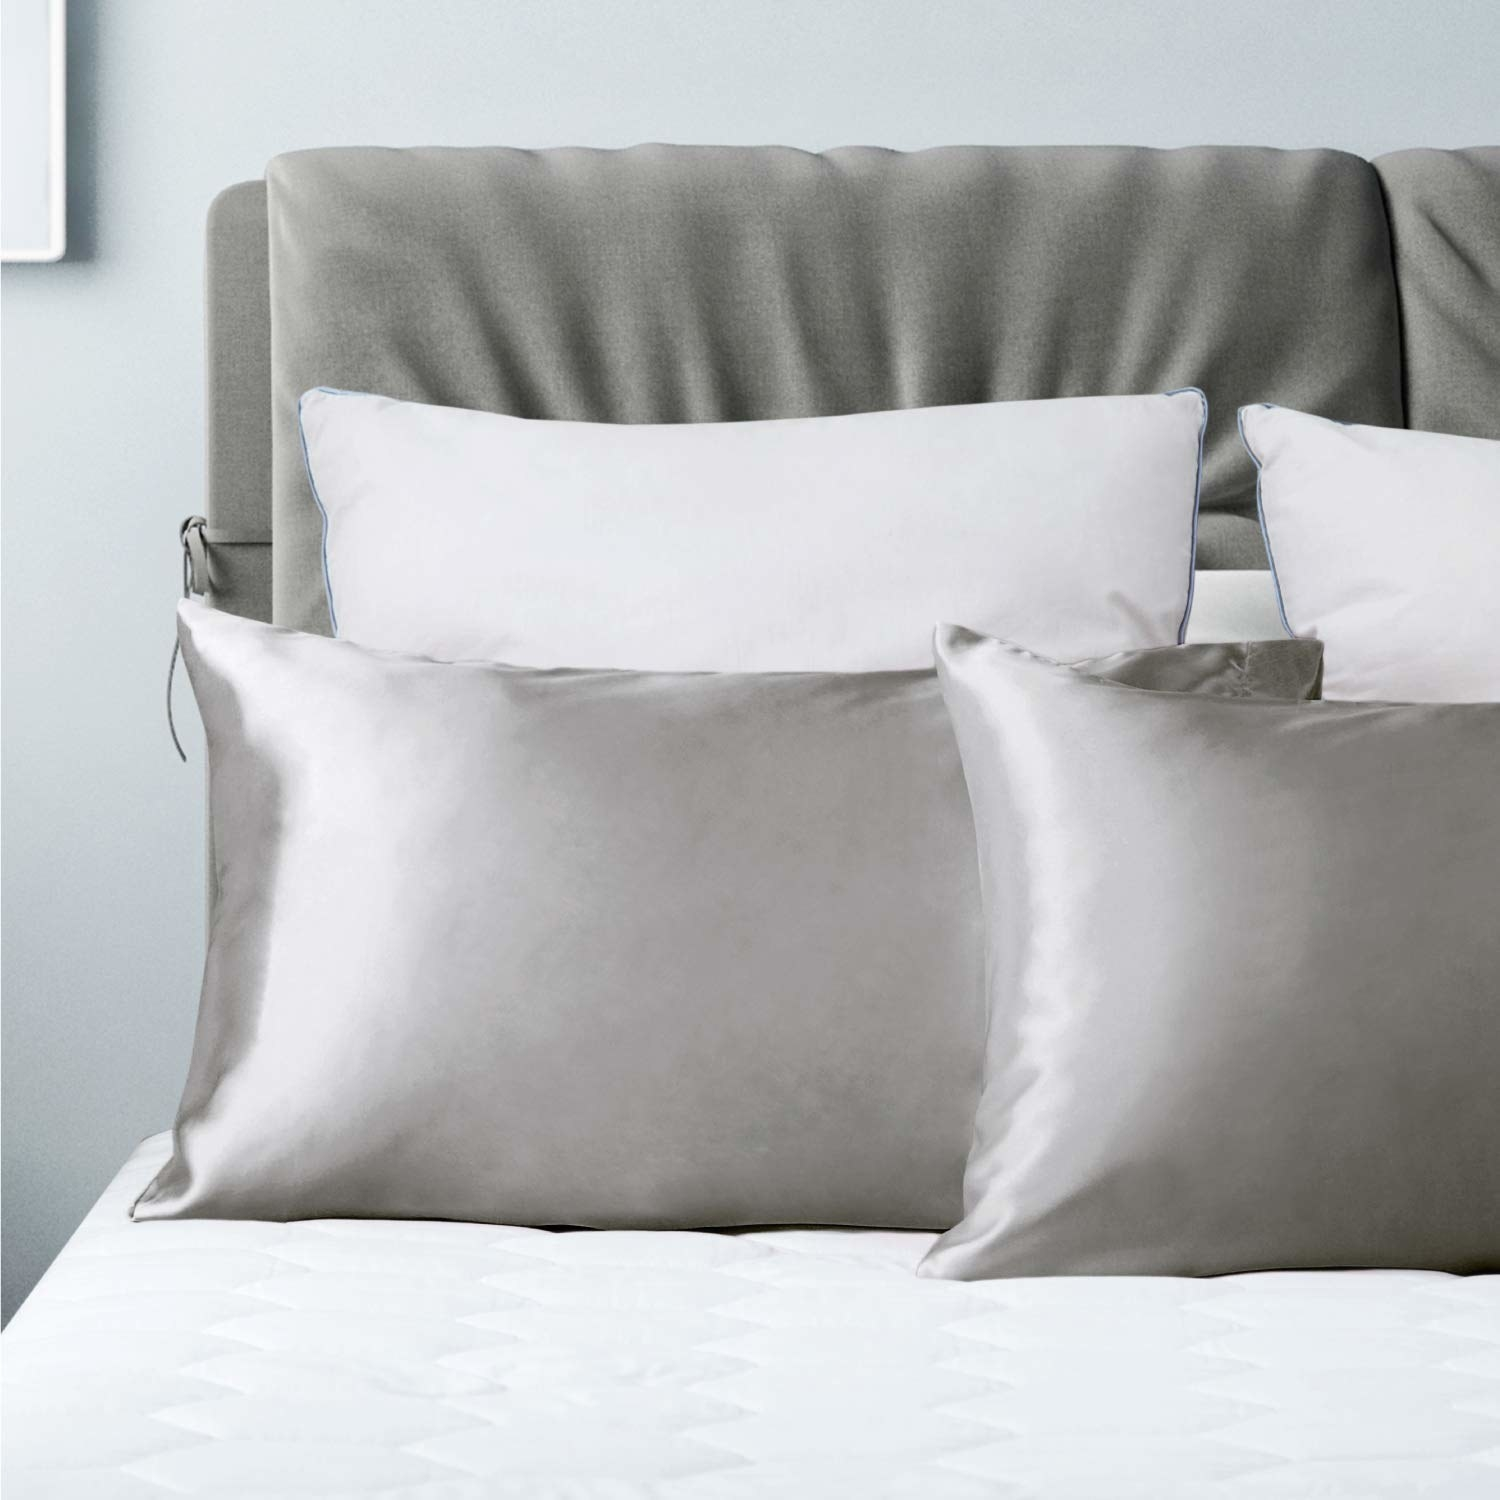 bed with gray satin pillowcases on two bed pillows